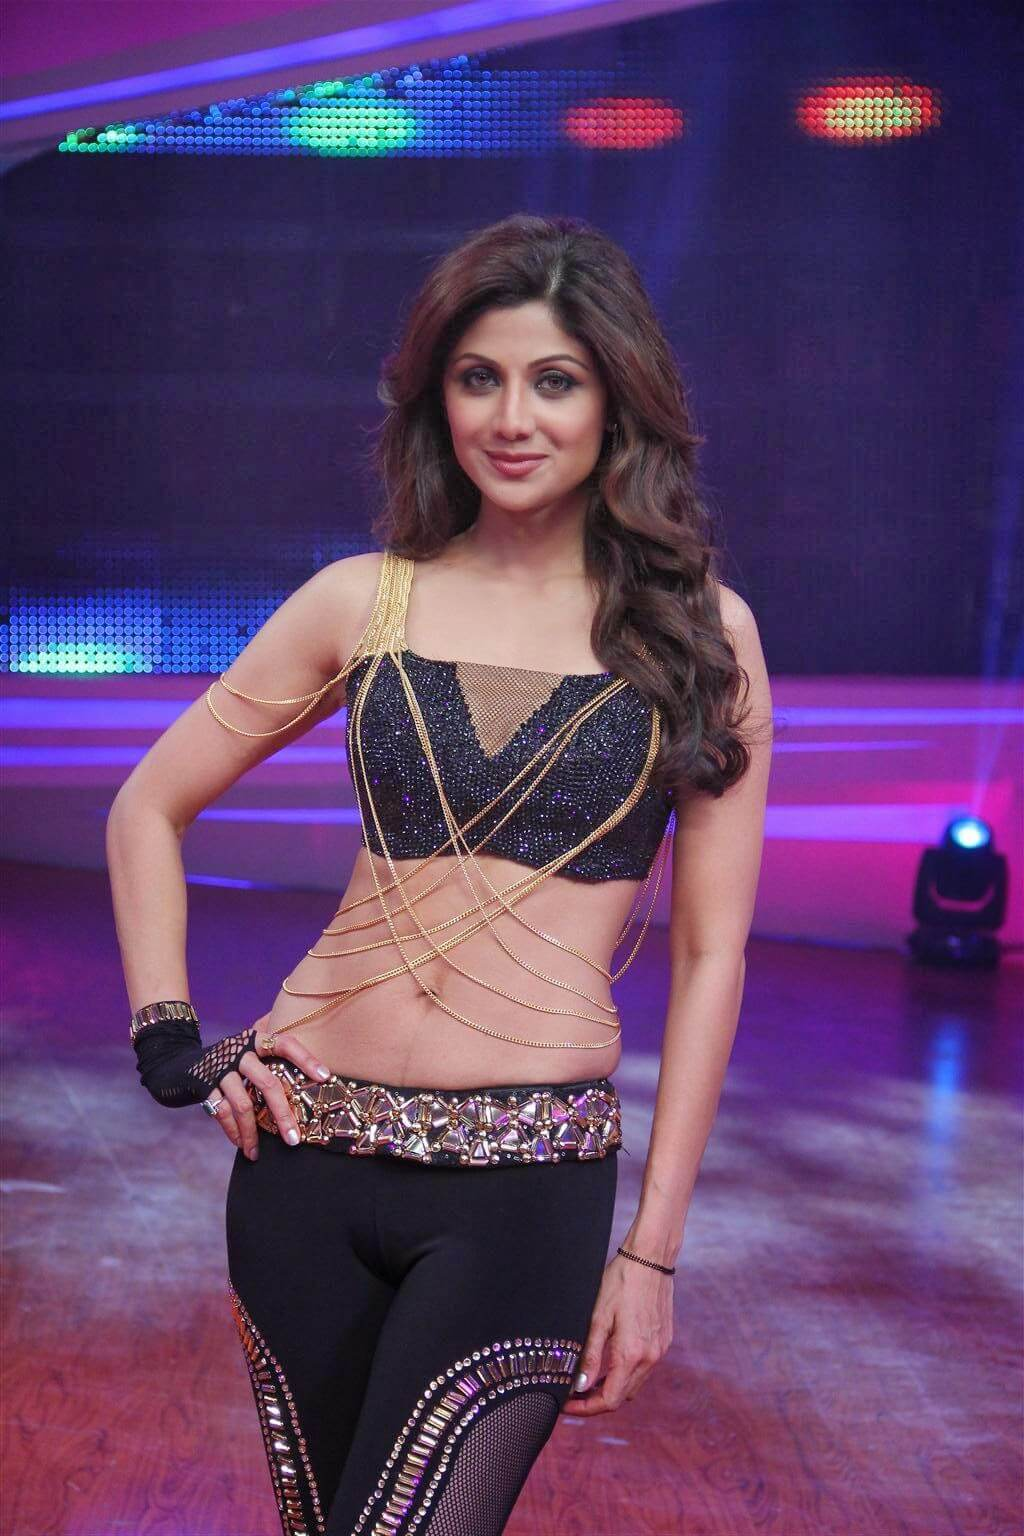 'We tend to focus more on size, shapes than agility, endurance': Shilpa Shetty Kundra